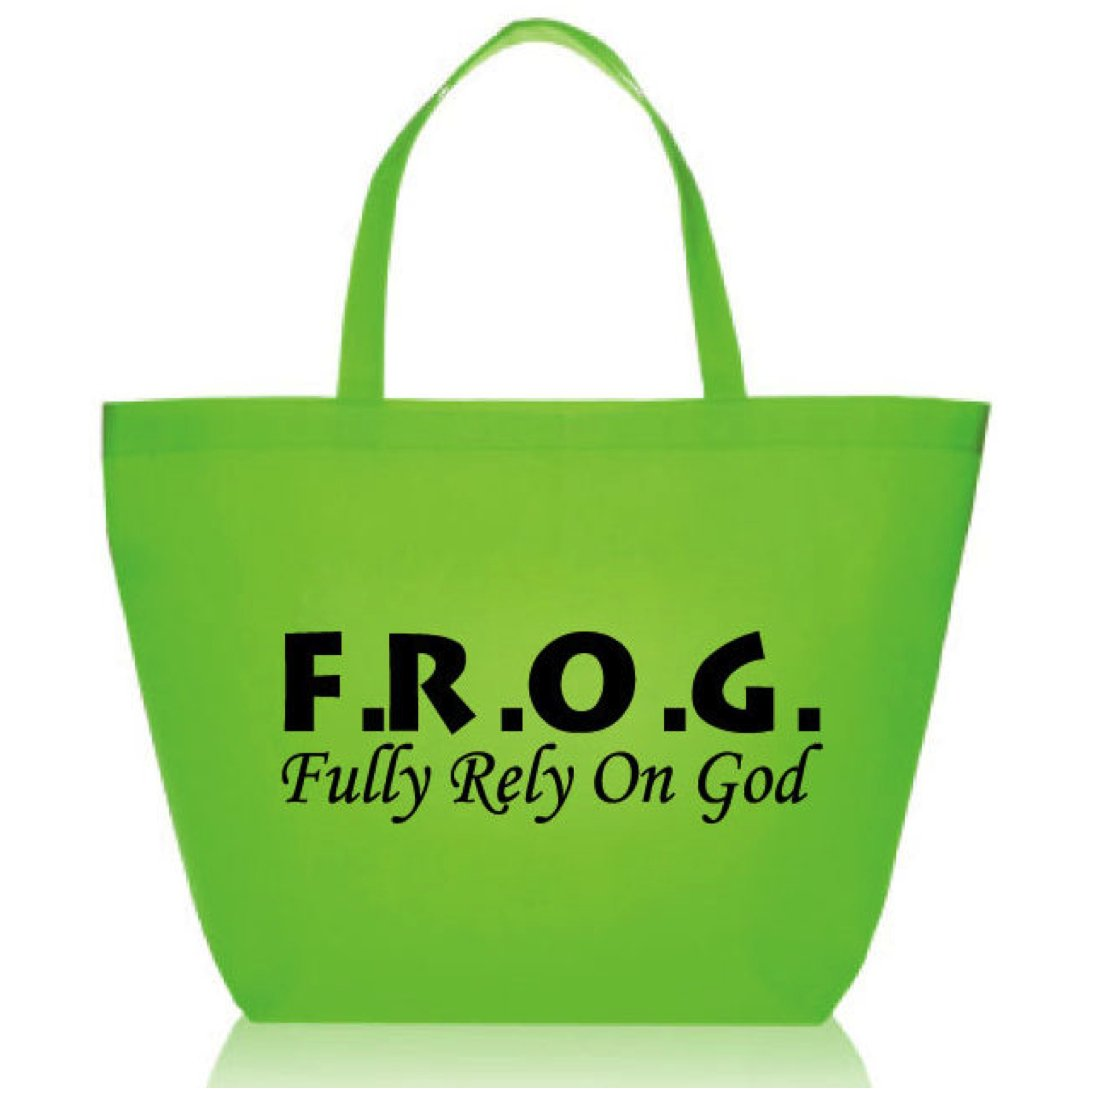 Green Wholesale Large Fully Rely On God Frog F.R.O.G. Nonwoven Tote Bags (100 Count) 20'' by biblebanz